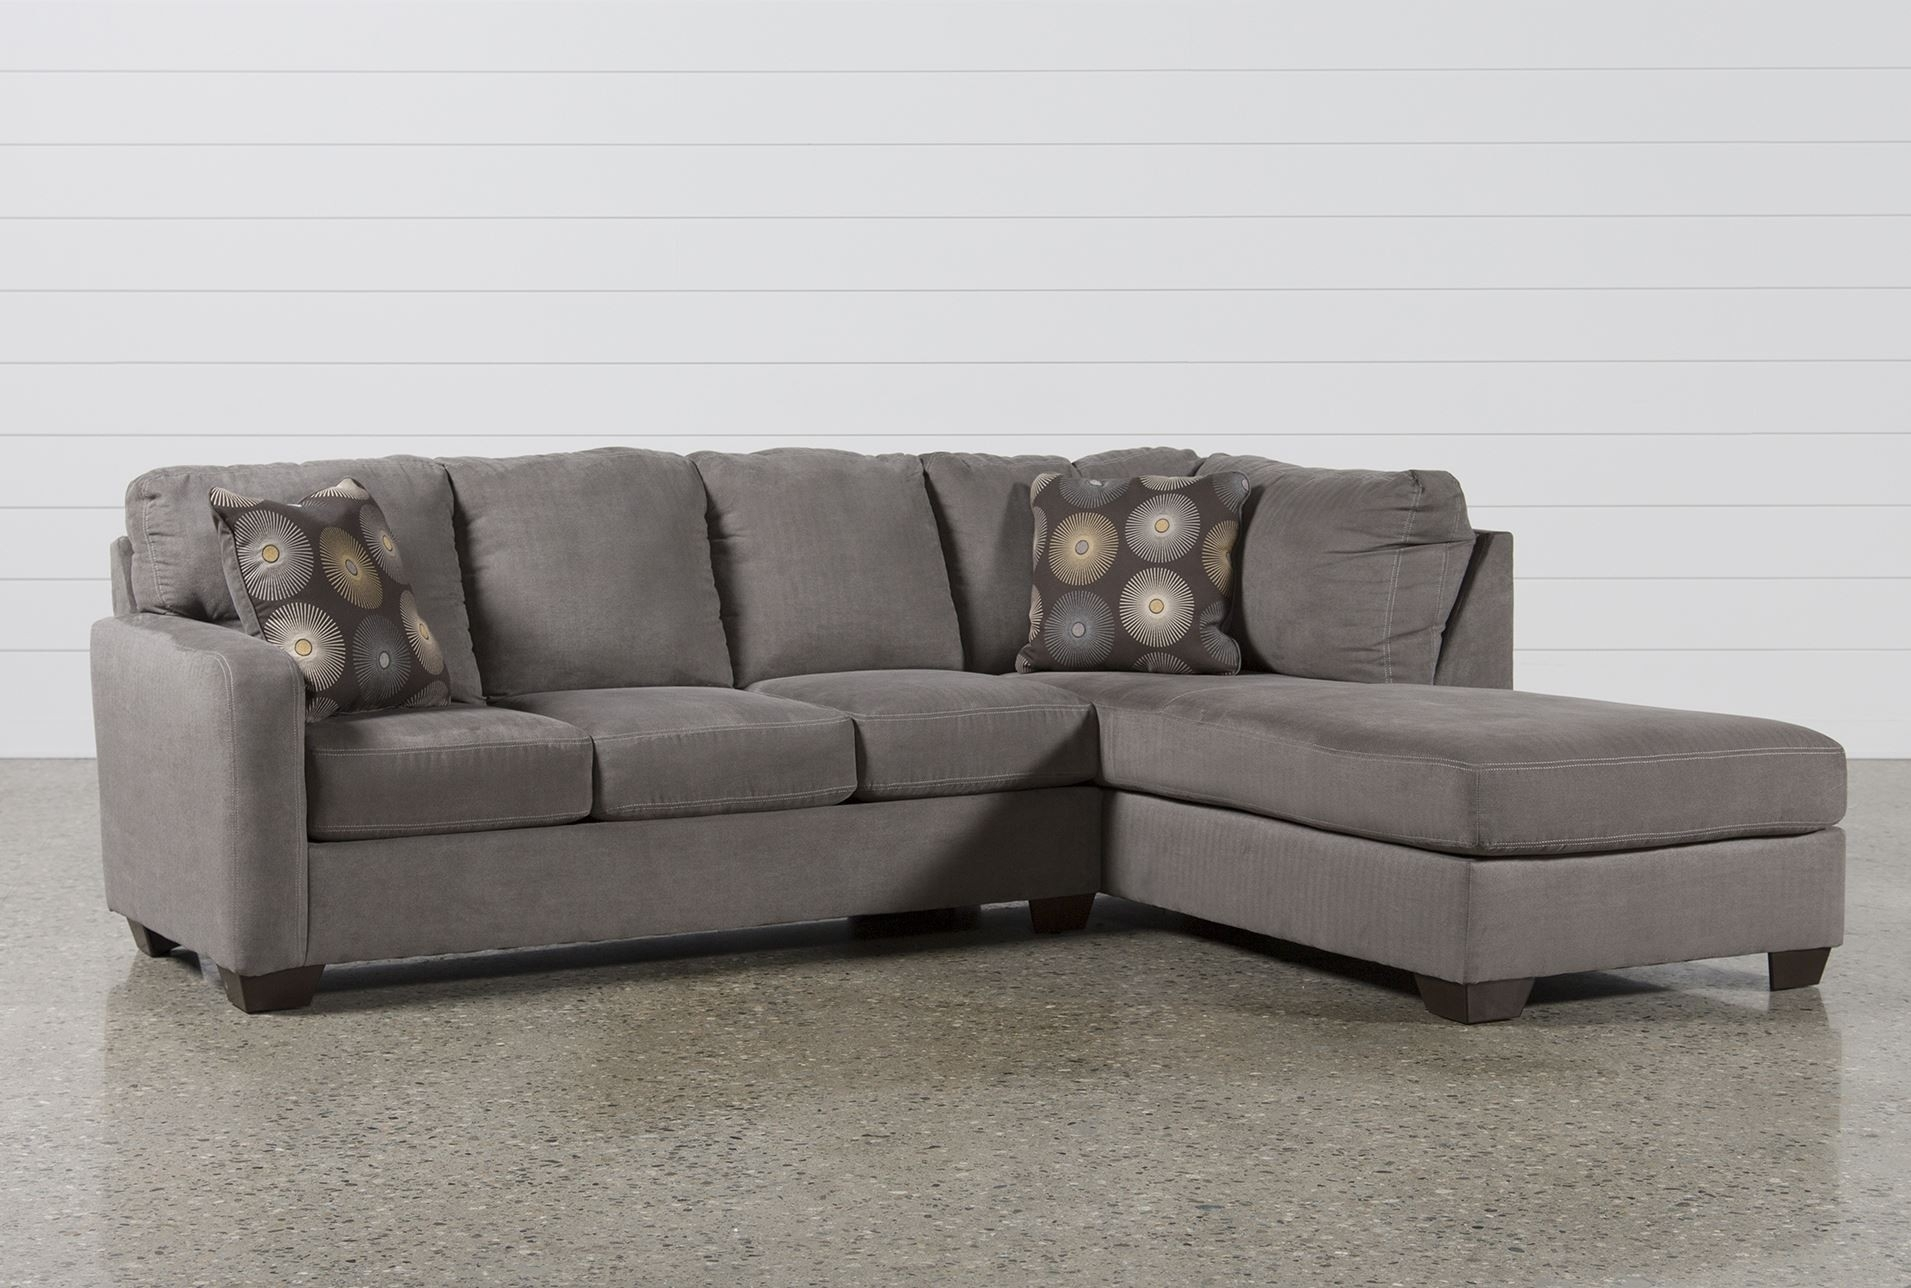 Lovely 2 Piece Sectional Sofa – Buildsimplehome Throughout Evan 2 Piece Sectionals With Raf Chaise (View 5 of 25)